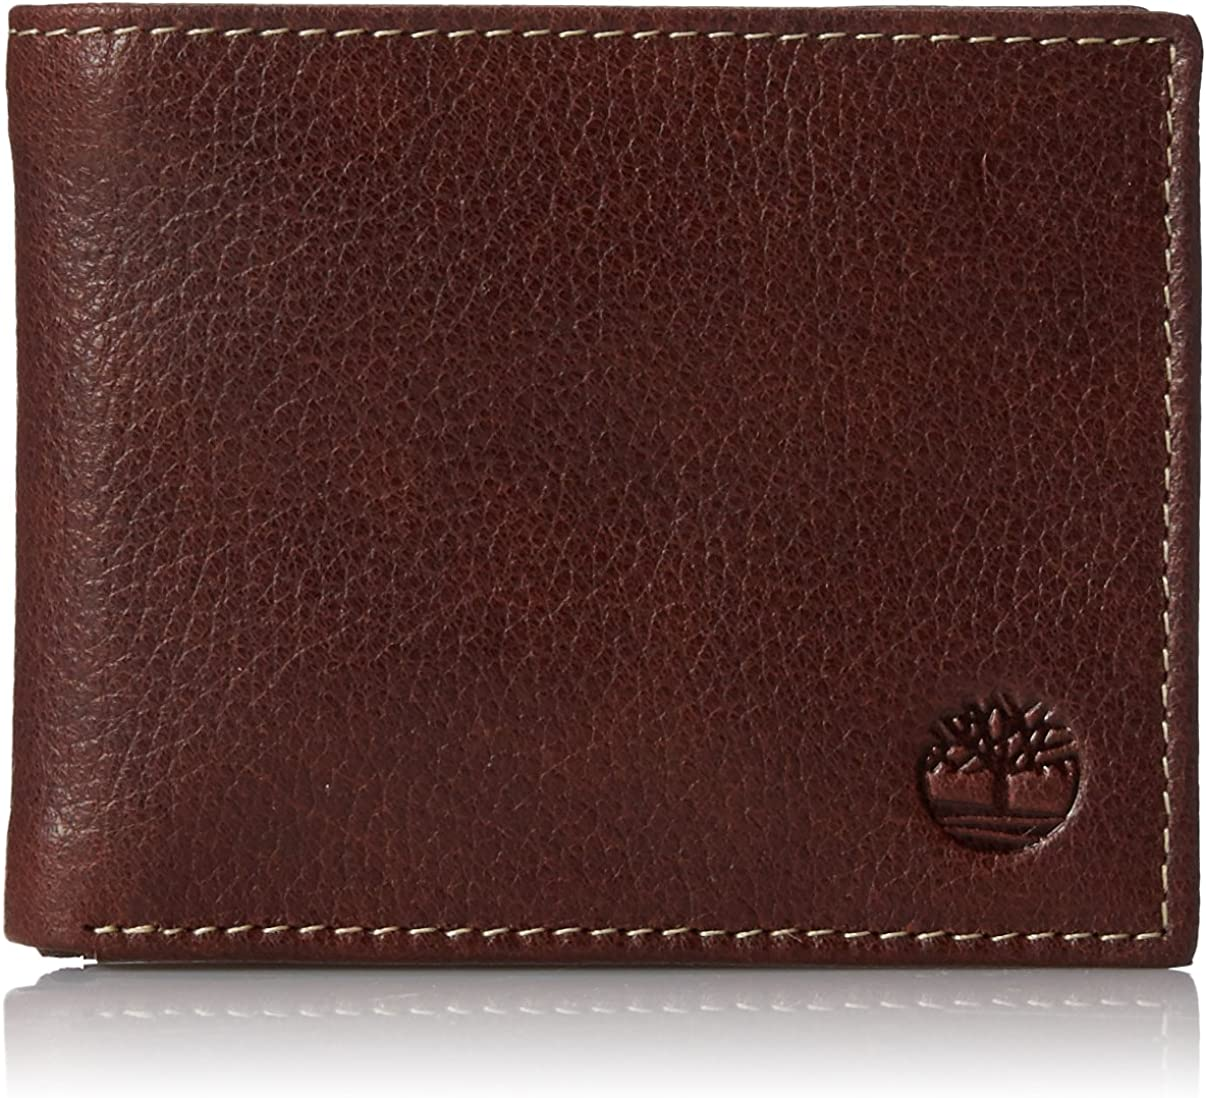 Timberland Men's Leather Wallet with Attached Flip Pocket, Brown (Sportz), One Size